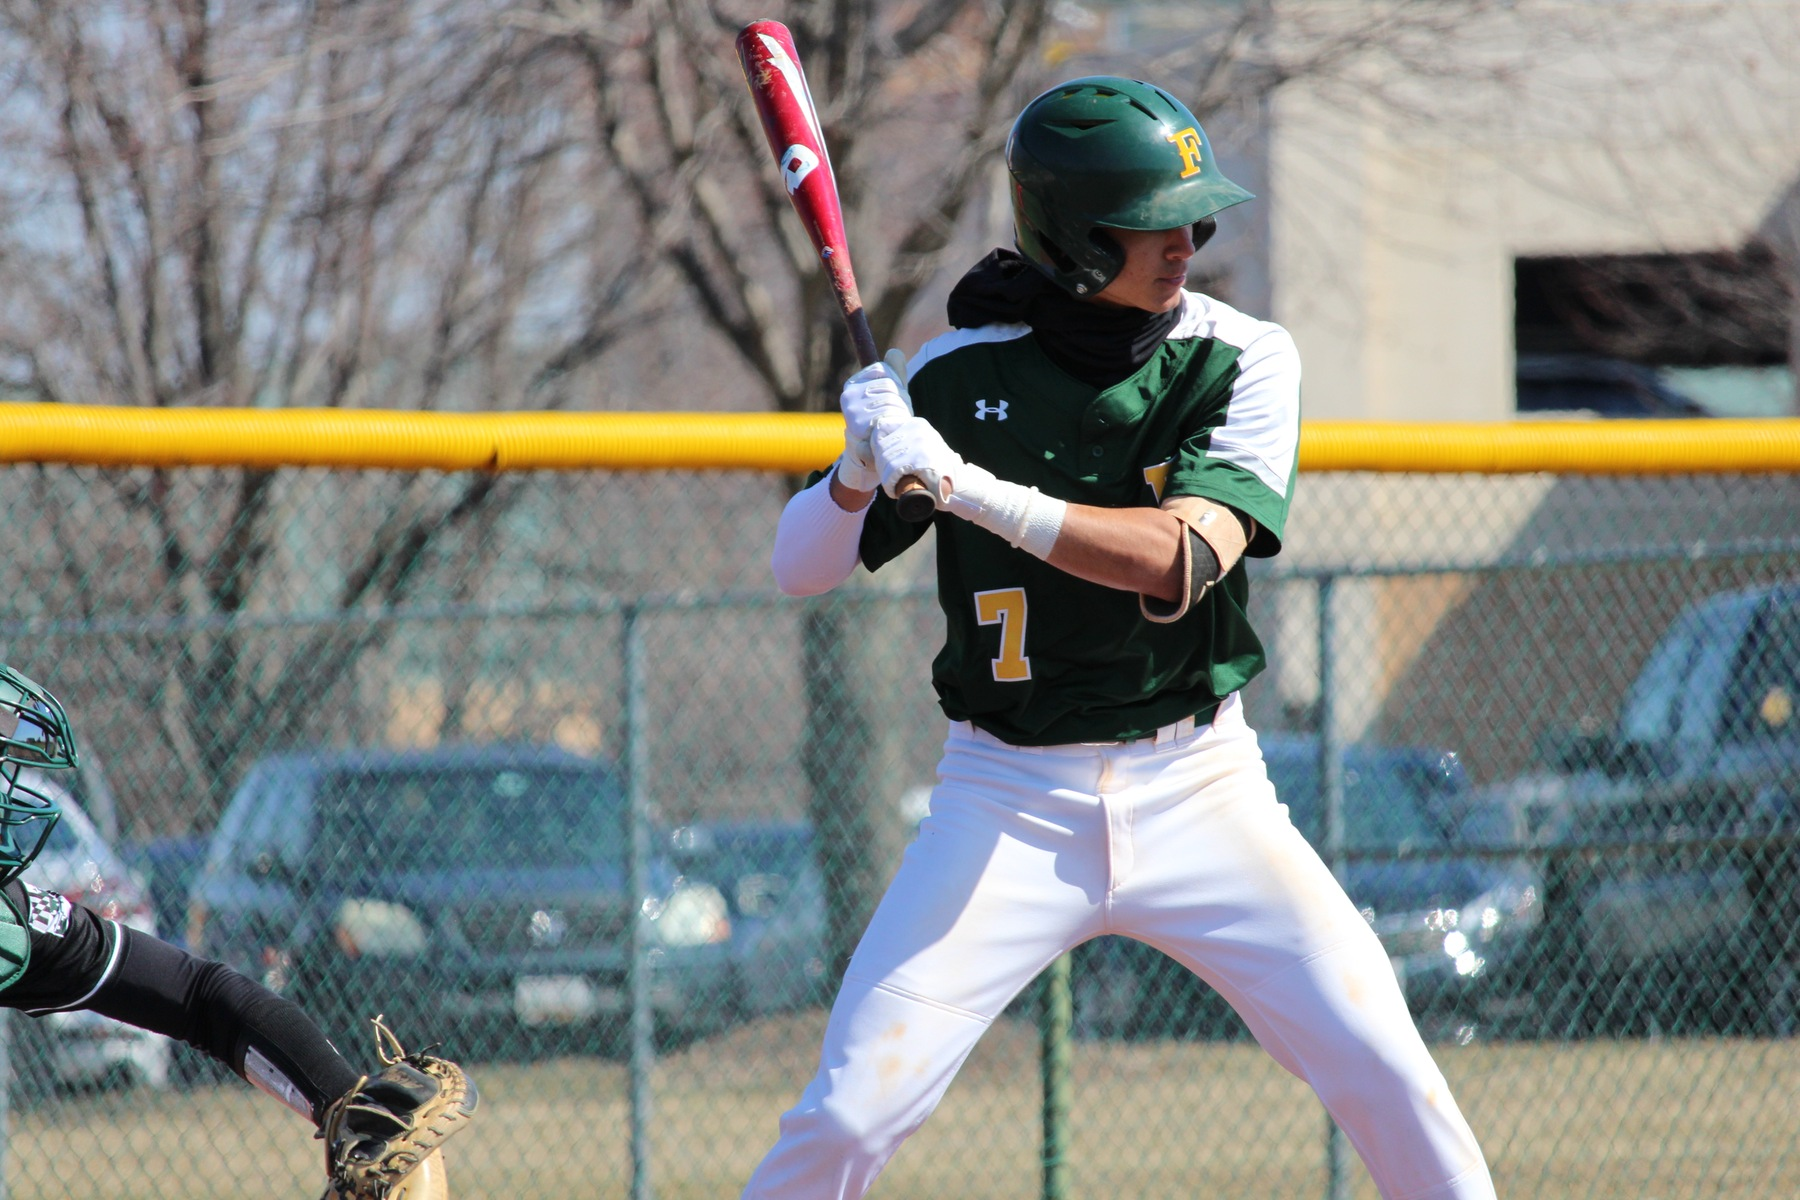 No. 17 Baseball Suffers First Loss of Season in 5-2 Setback to Pioneers